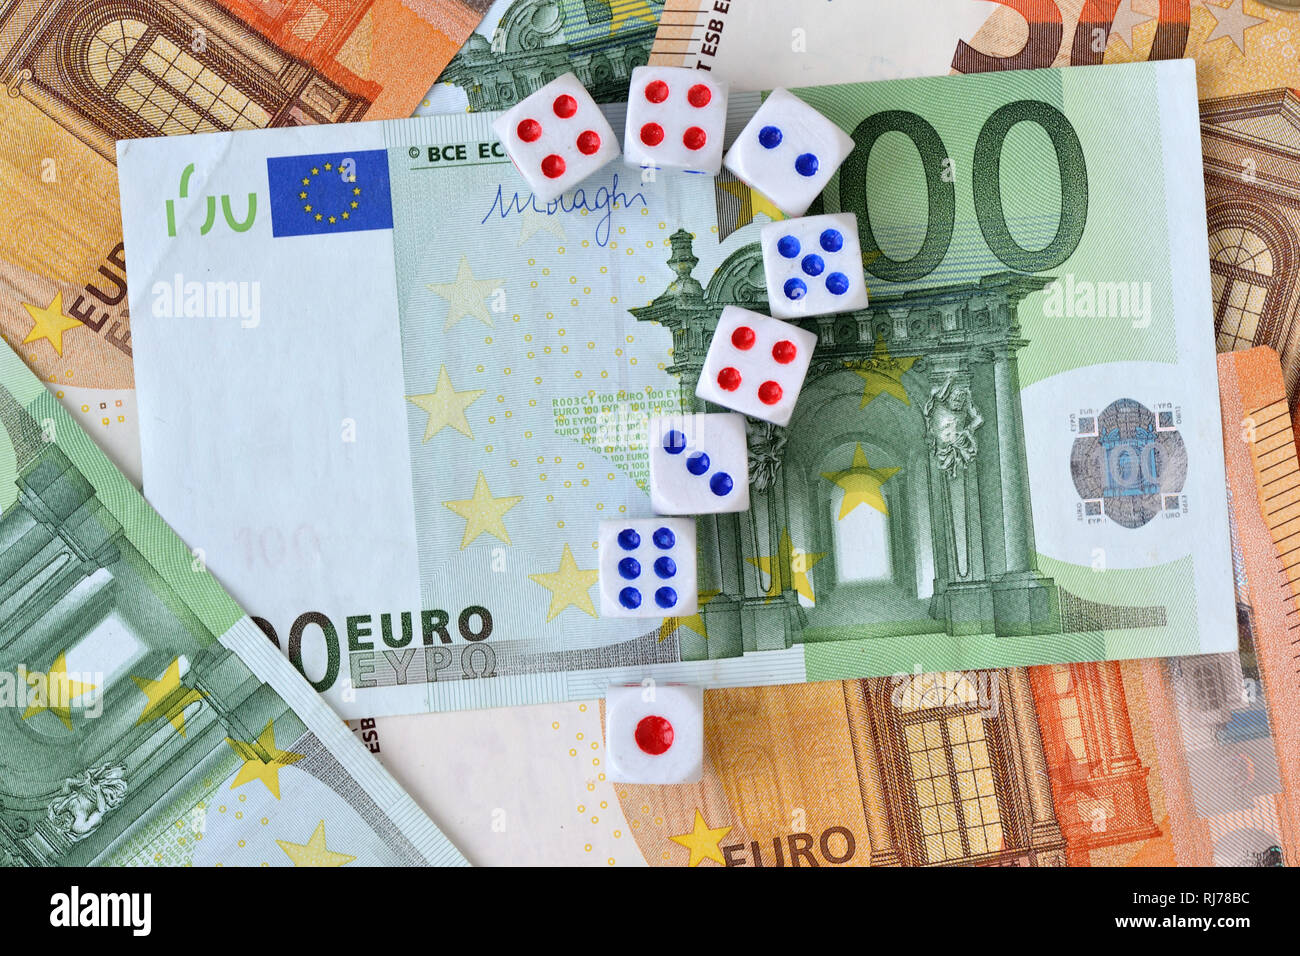 Question mark made of dices on euro money background - Concept of risky investments and gamble - Stock Image